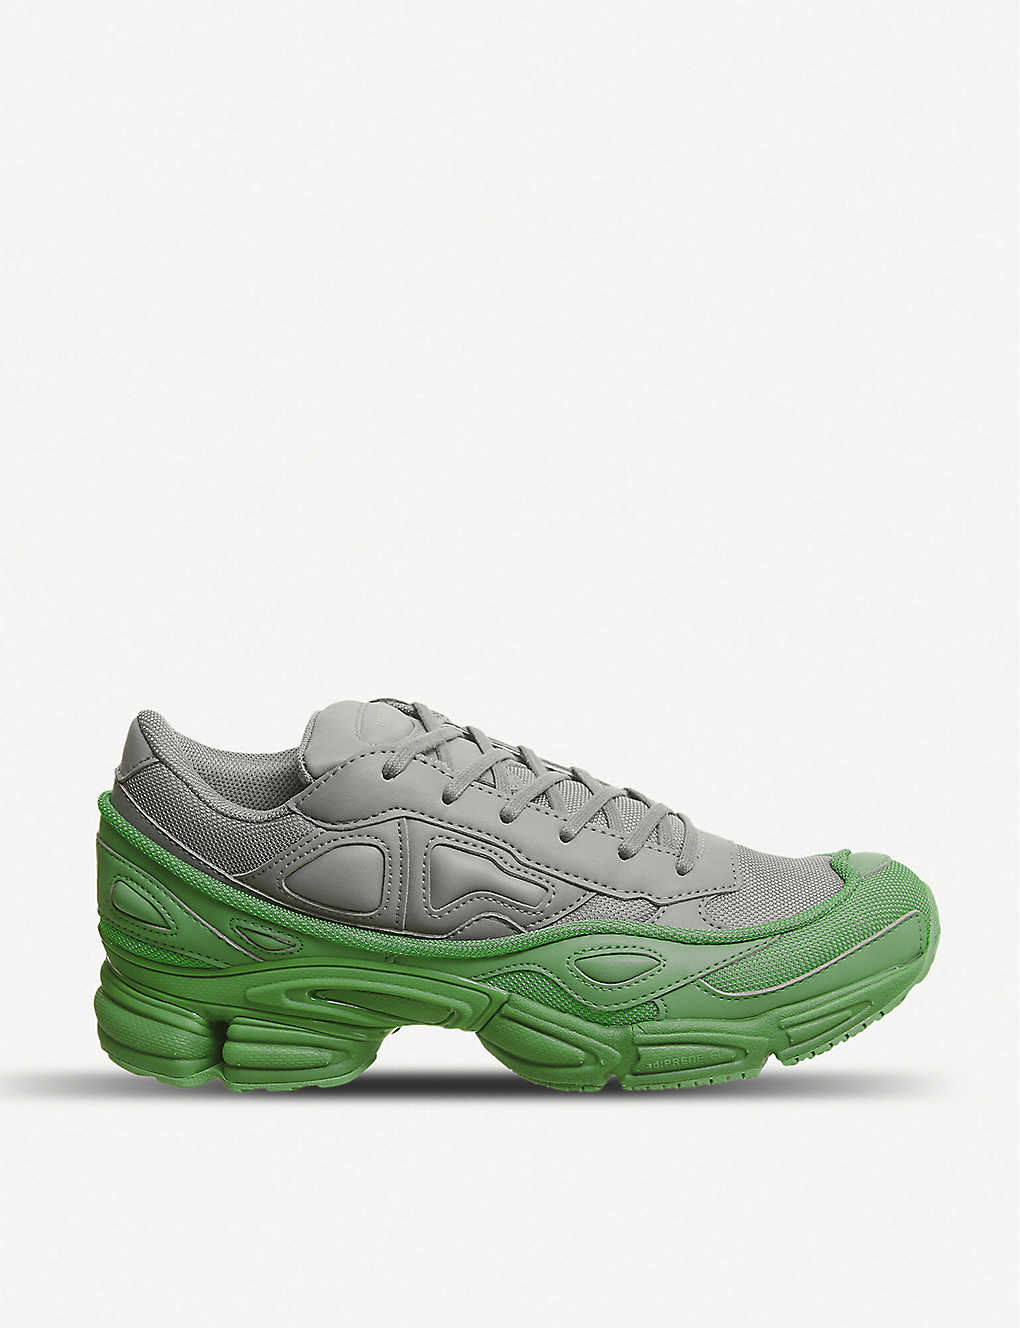 d3de60f74 ADIDAS X RAF SIMONS - Ozweego III leather and mesh trainers ...